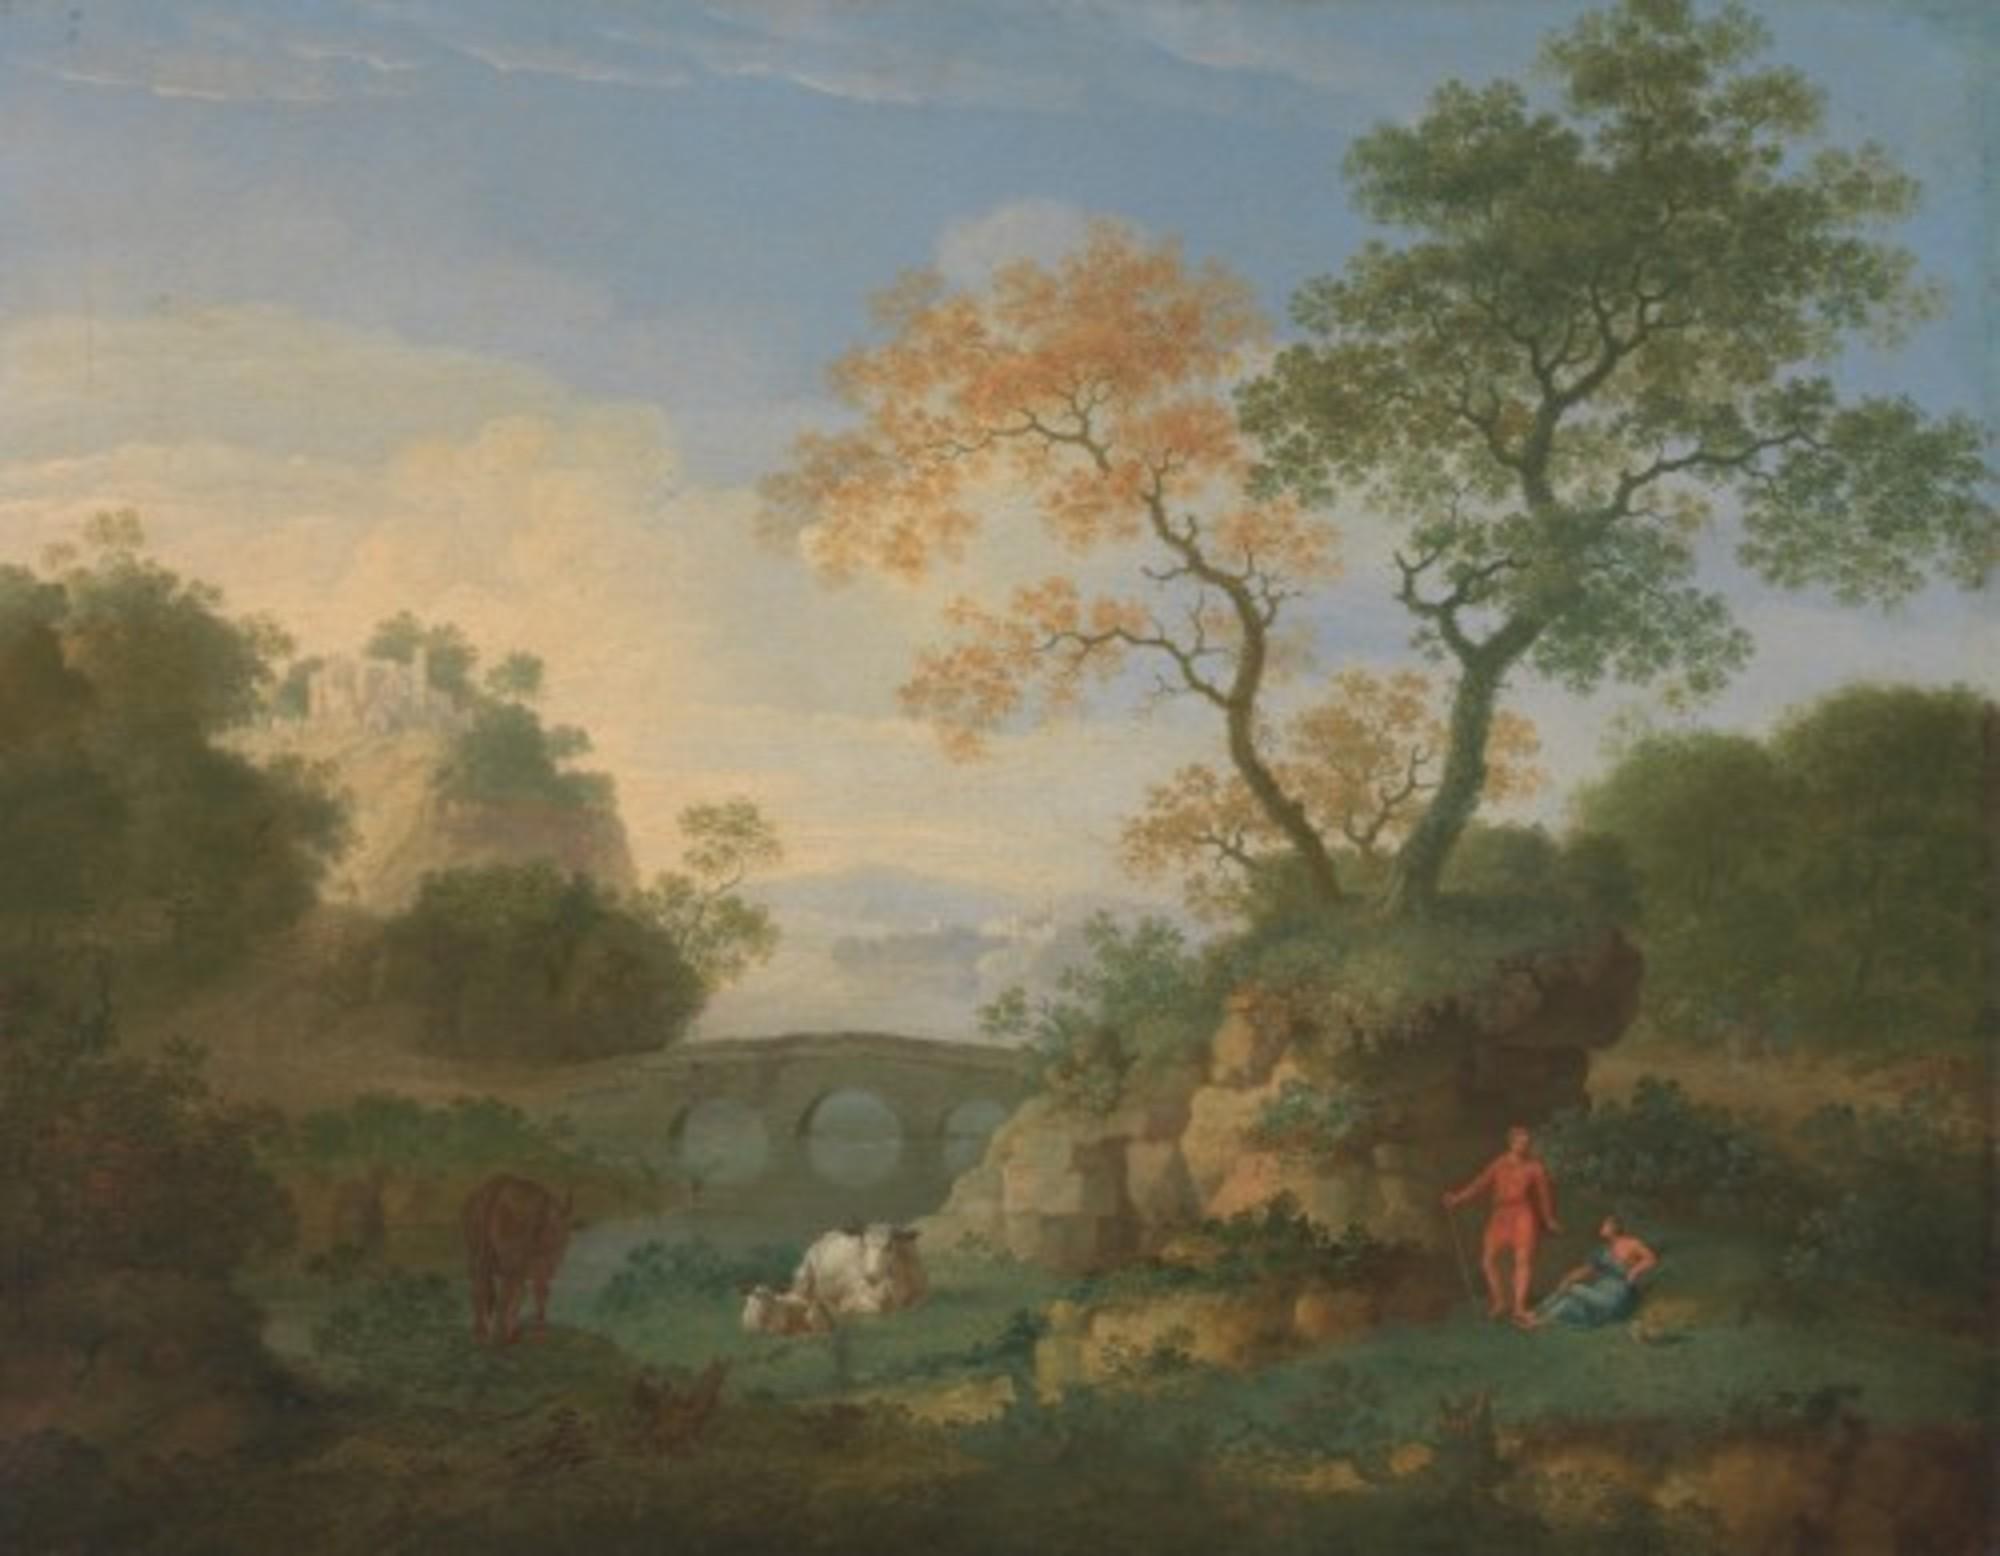 William-Smith---A-Landscape-with-Distant-Classical-Ruins-a-Bridge-Figures-and-Cattle---Google-Art-Project.jpg